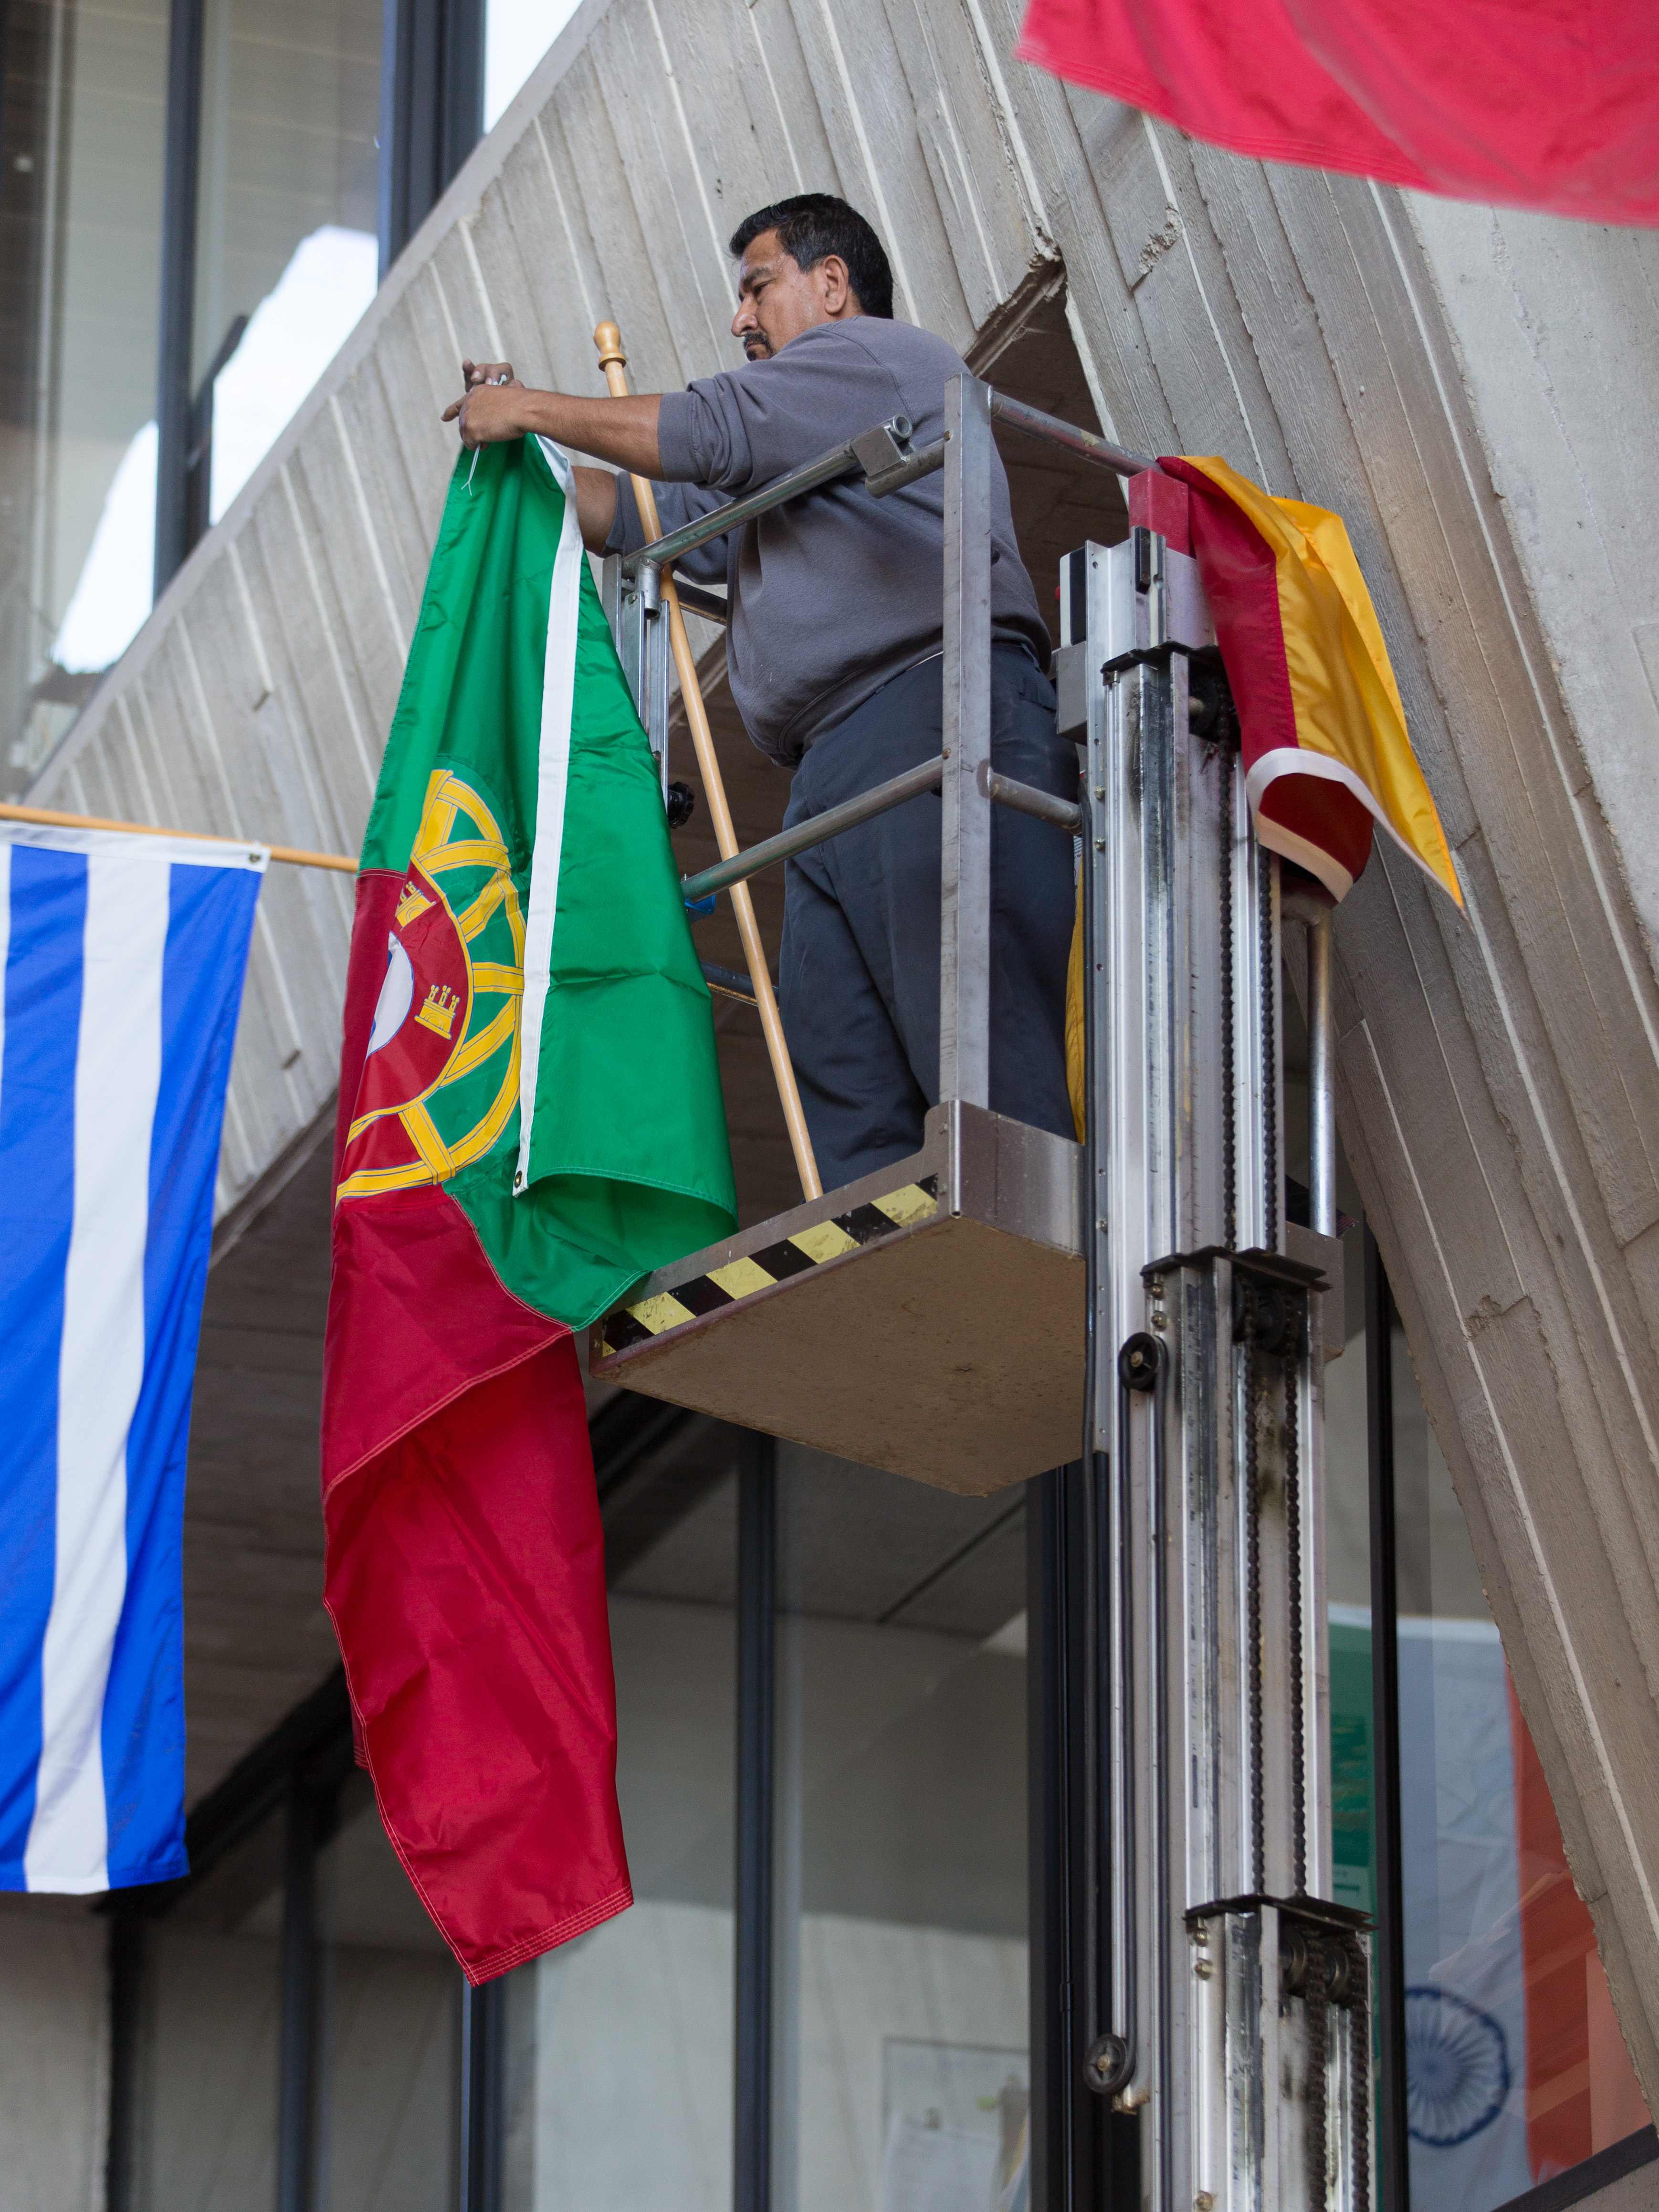 (2/2) ... and the Portuguese flag goes up. Photo: Elliott McCrory, people